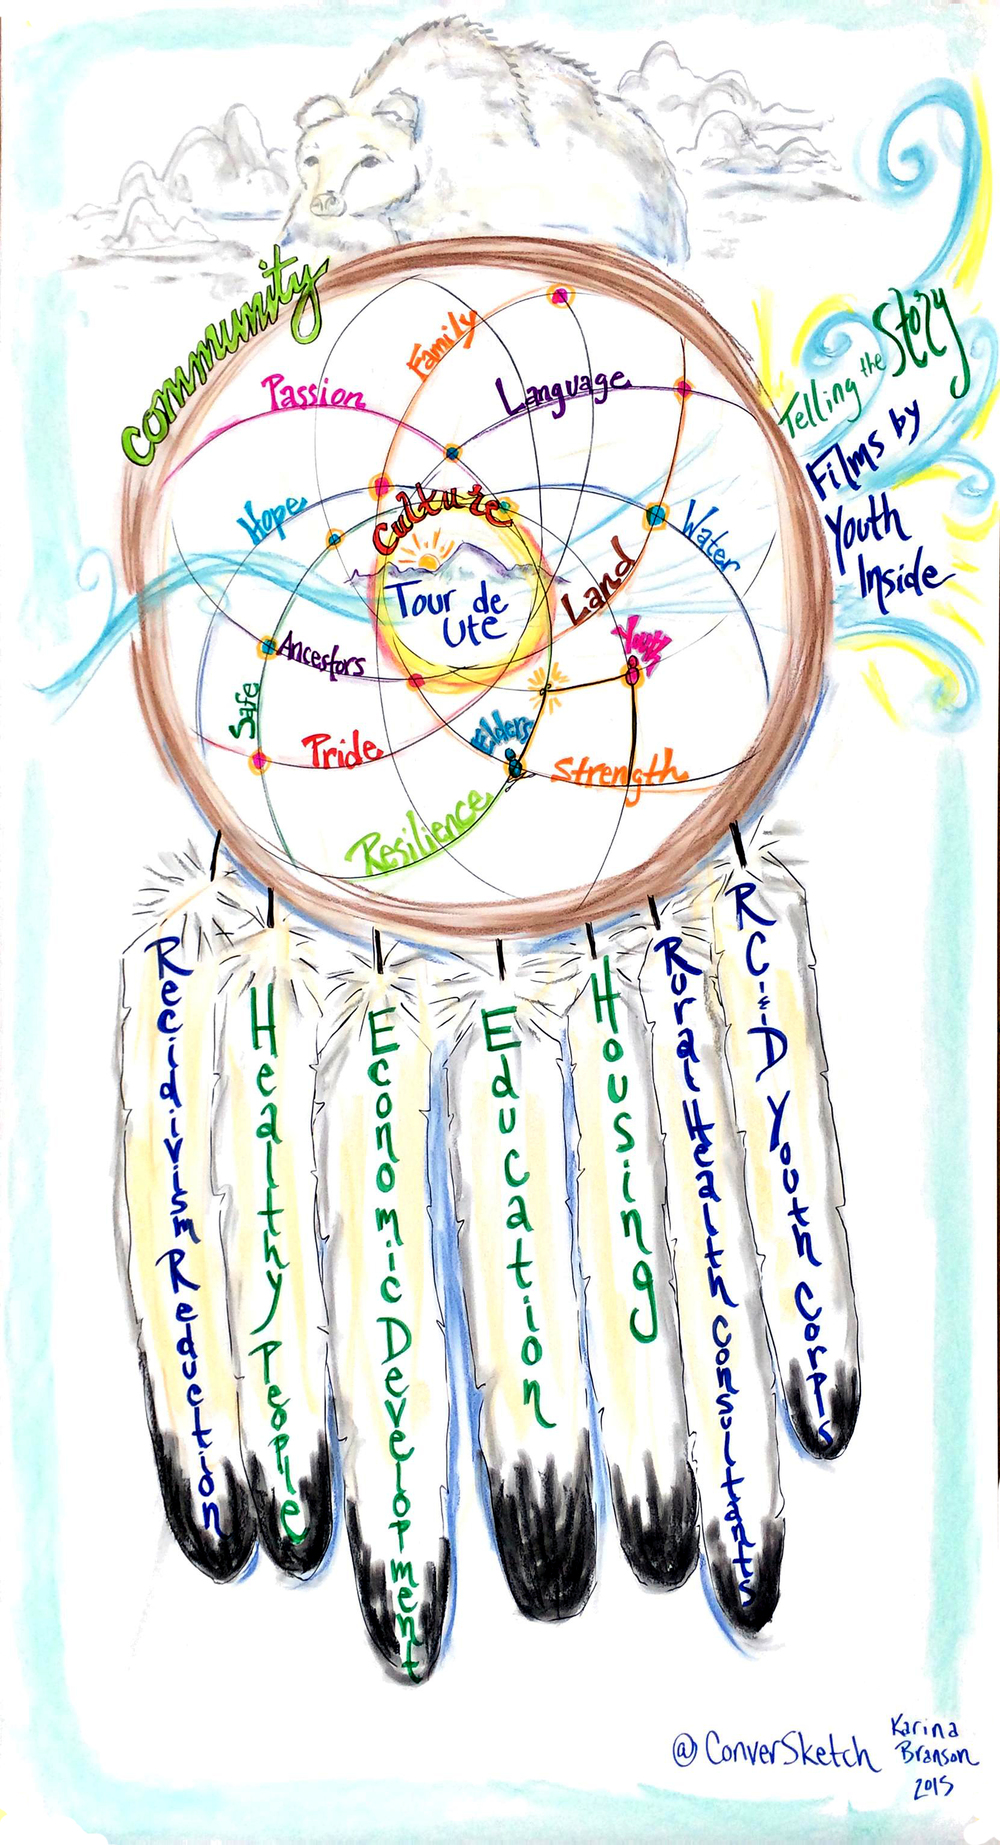 A synthesis graphic done during the two day retreat.